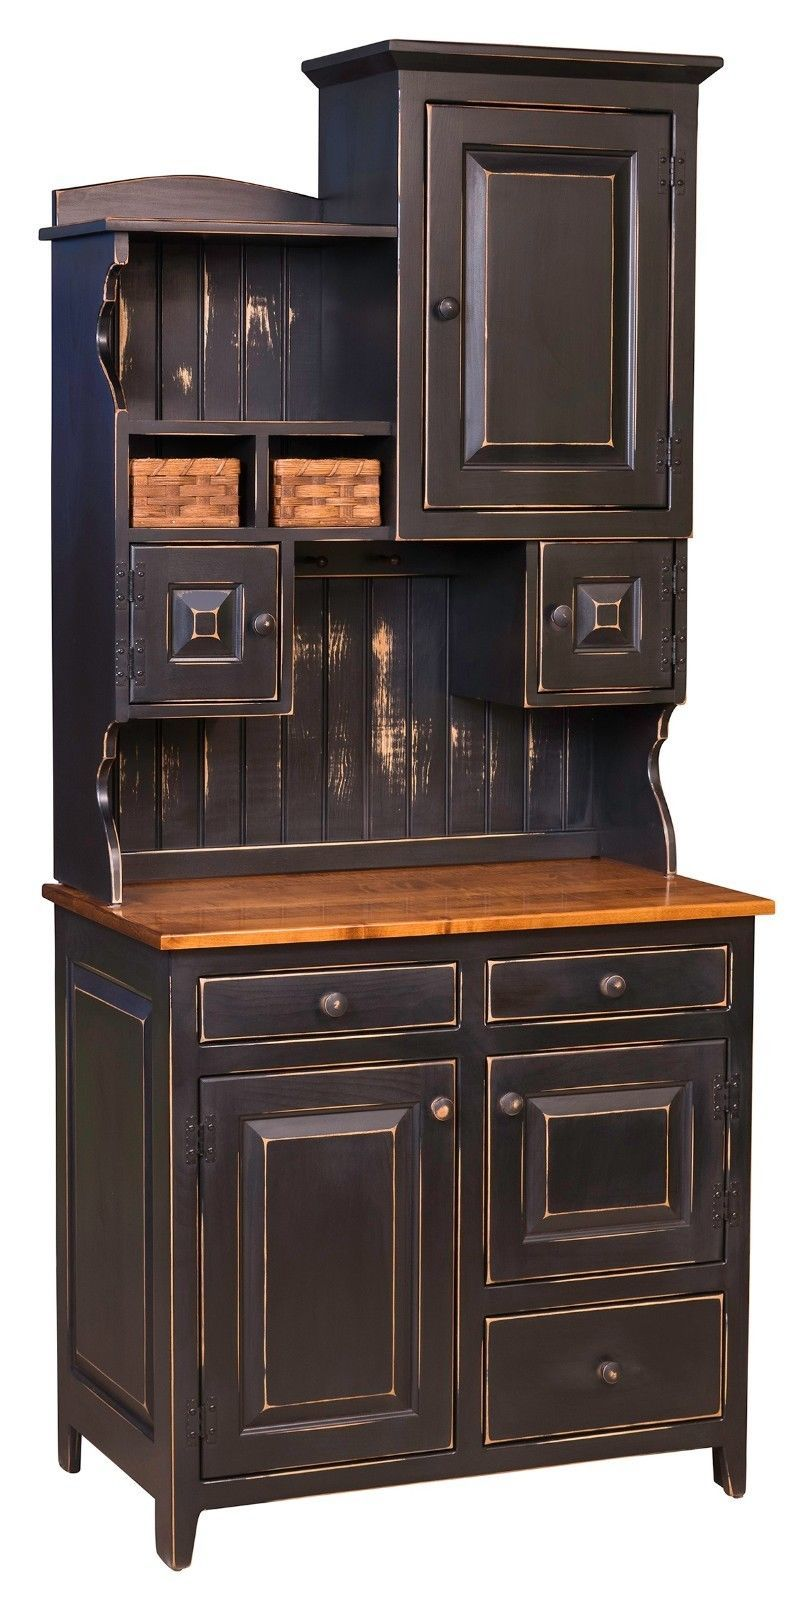 chic furniture best pinterest spring tour decorating cottage hutch on images painted beelori cupboard home